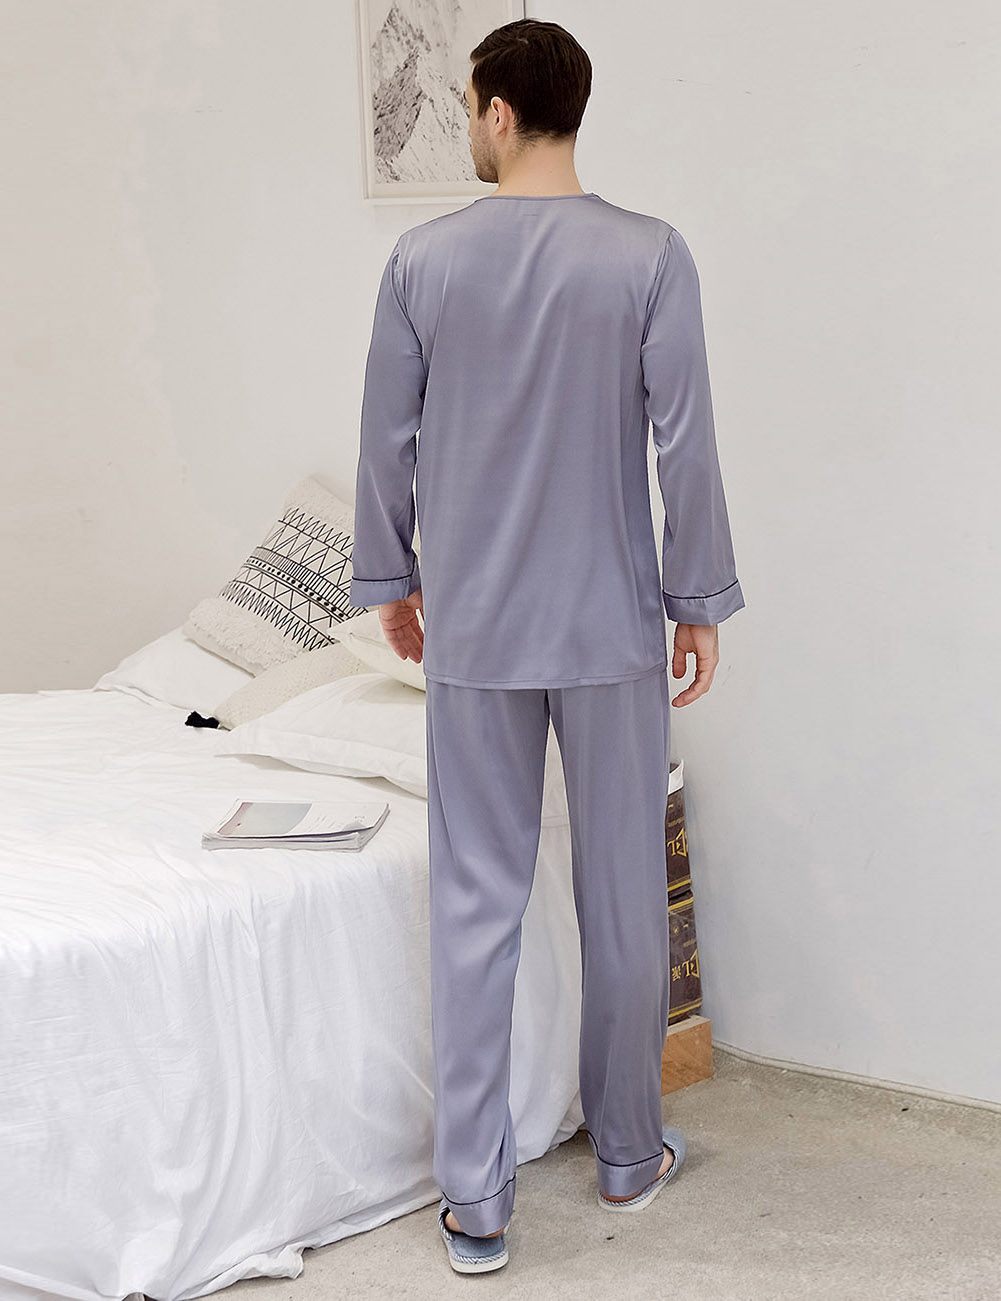 //cdn.affectcloud.com/hexinfashion/upload/imgs/Lingerie/Men_Sleepwear/R195069-PL3/R195069-PL3-201911055dc130a19d2ea.jpg